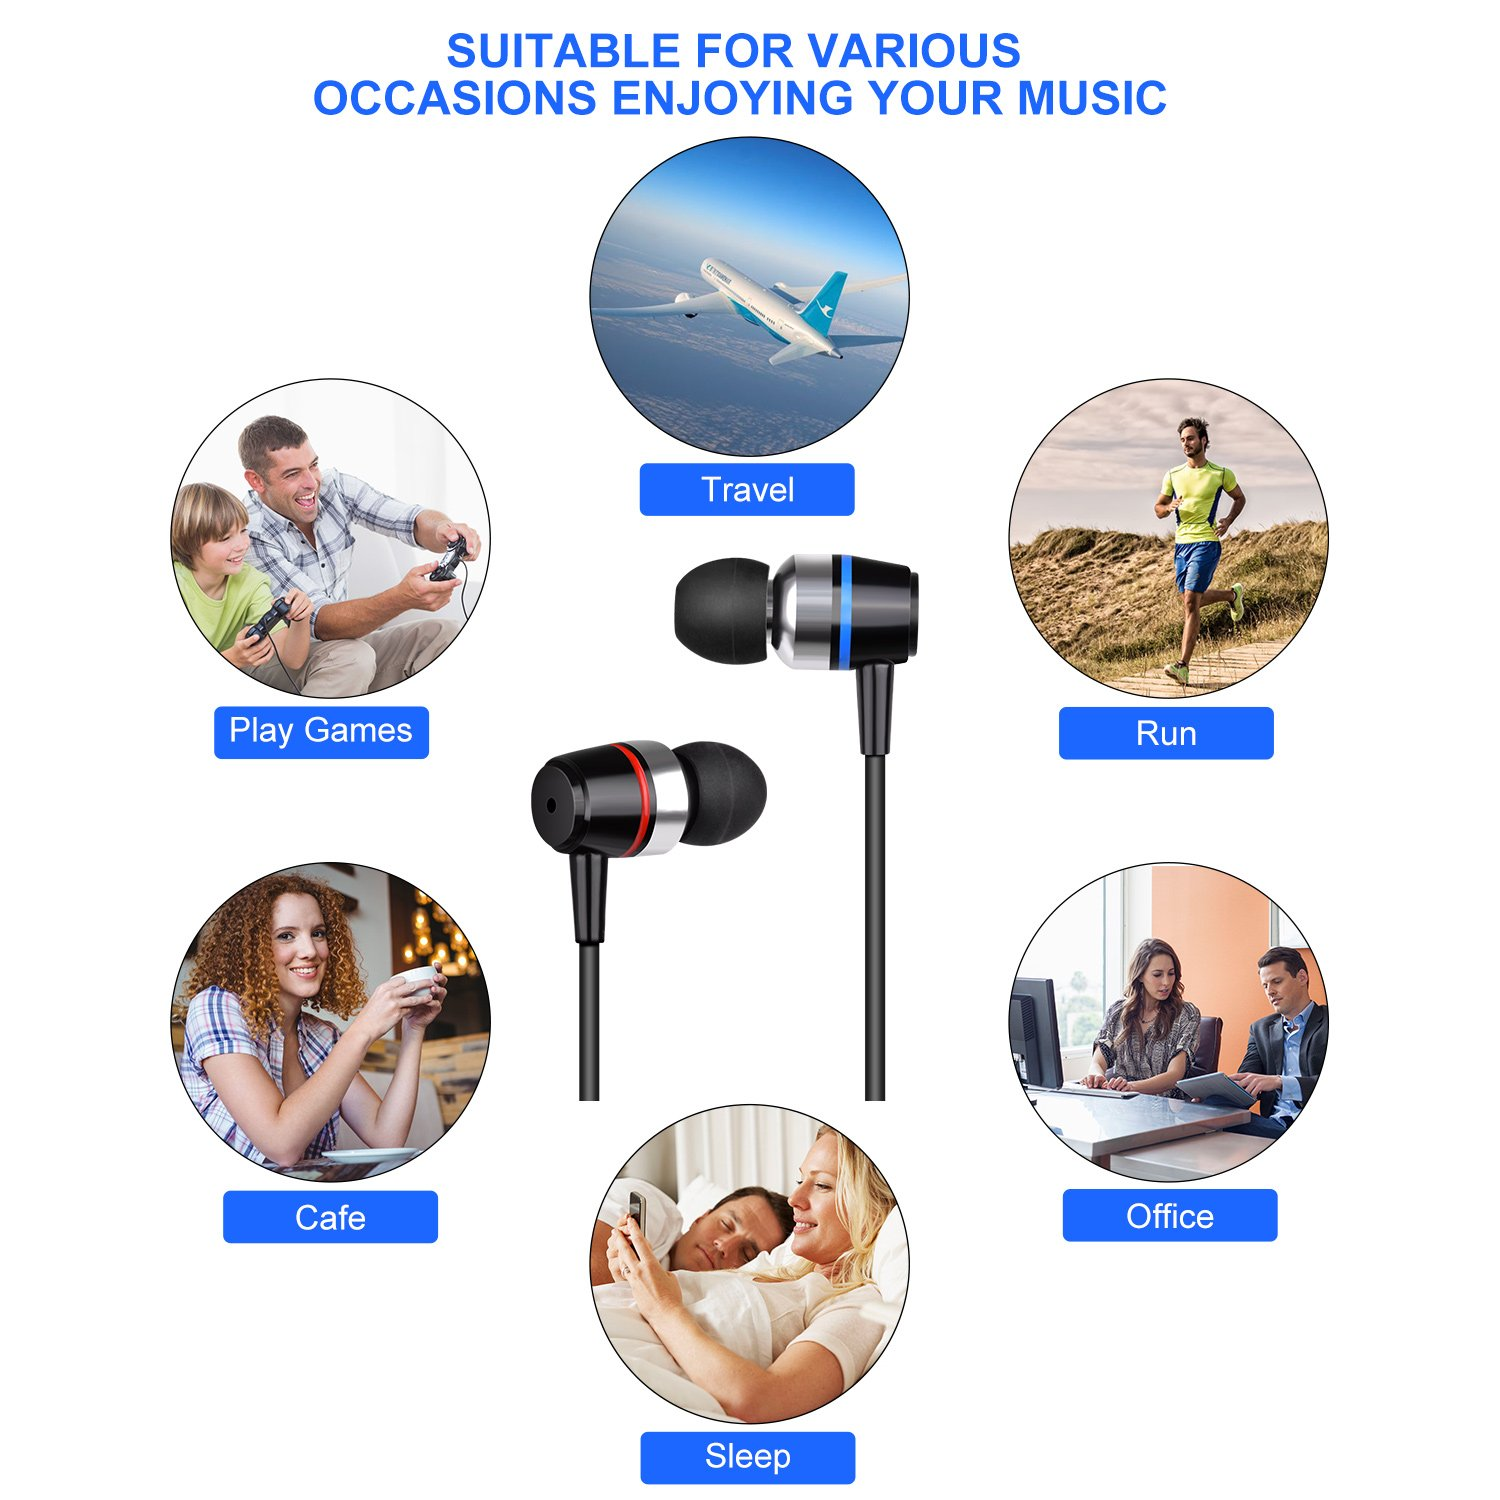 Earbuds Ear Buds Wired Earphones Headphones with Microphone Noise Cancelling Ear Phones Stereo in Ear Headphones Sports Earbuds with Mic and Volume Control Compatible iPhone Android iPad Laptop by TZCER (Image #2)